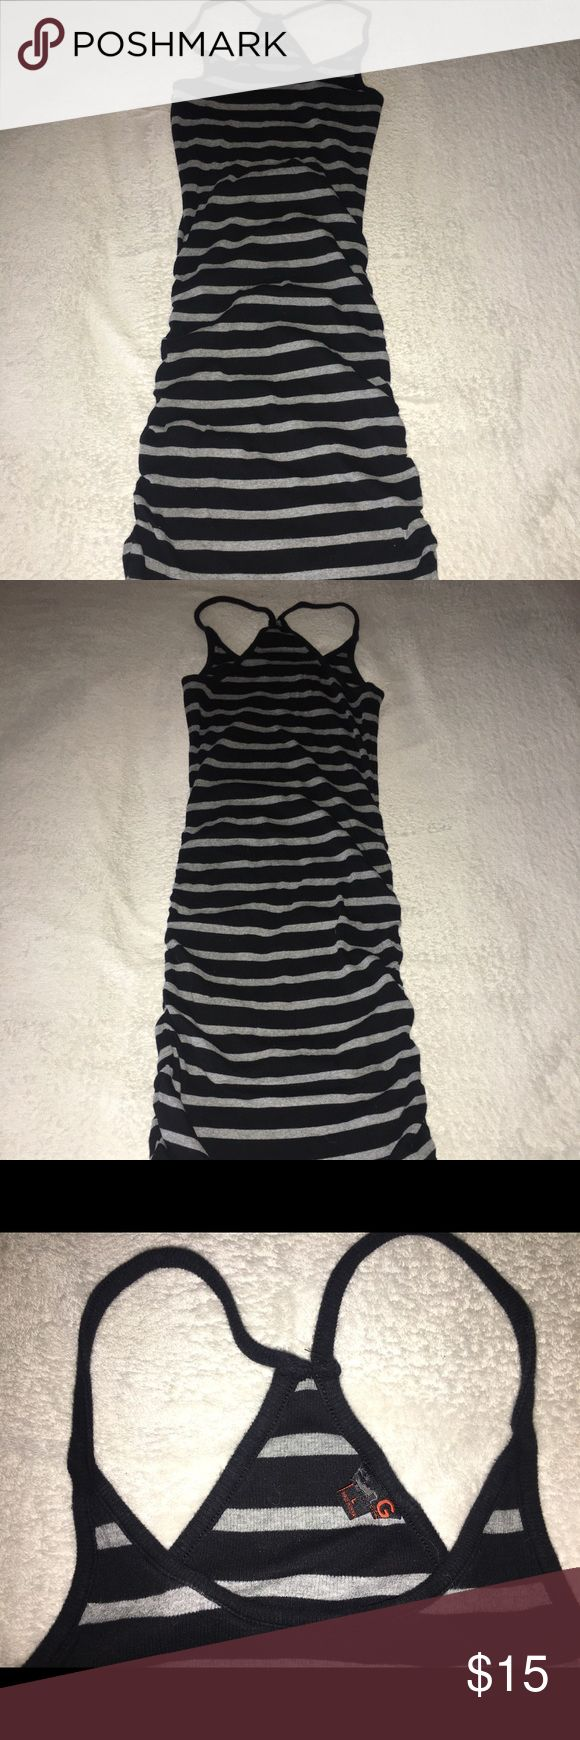 Guess Dress Women's Large I have a comfy black and gray striped Guess dress in a Large. It is an easy pull over that is great for the summer or by the pool. It's gathered perfectly along both sides to give a great look.   Ask questions, make offers, and all sales are final. Thank you for POSHING❣️ Guess Dresses